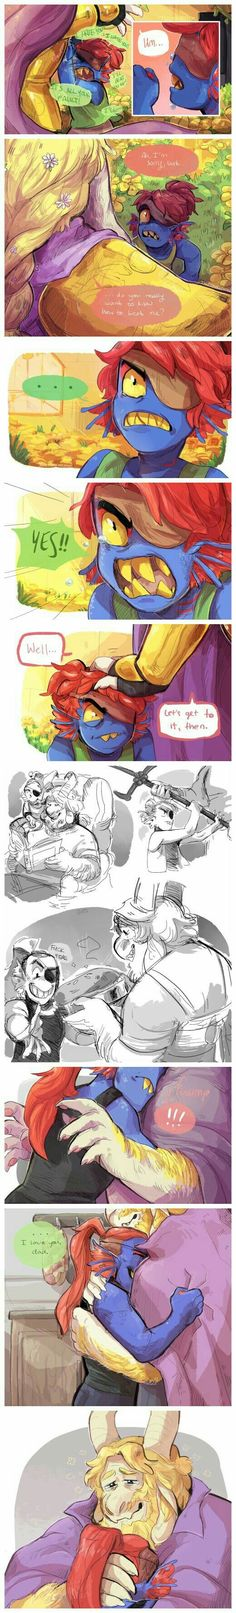 Asgore really is like a father to Undyne.